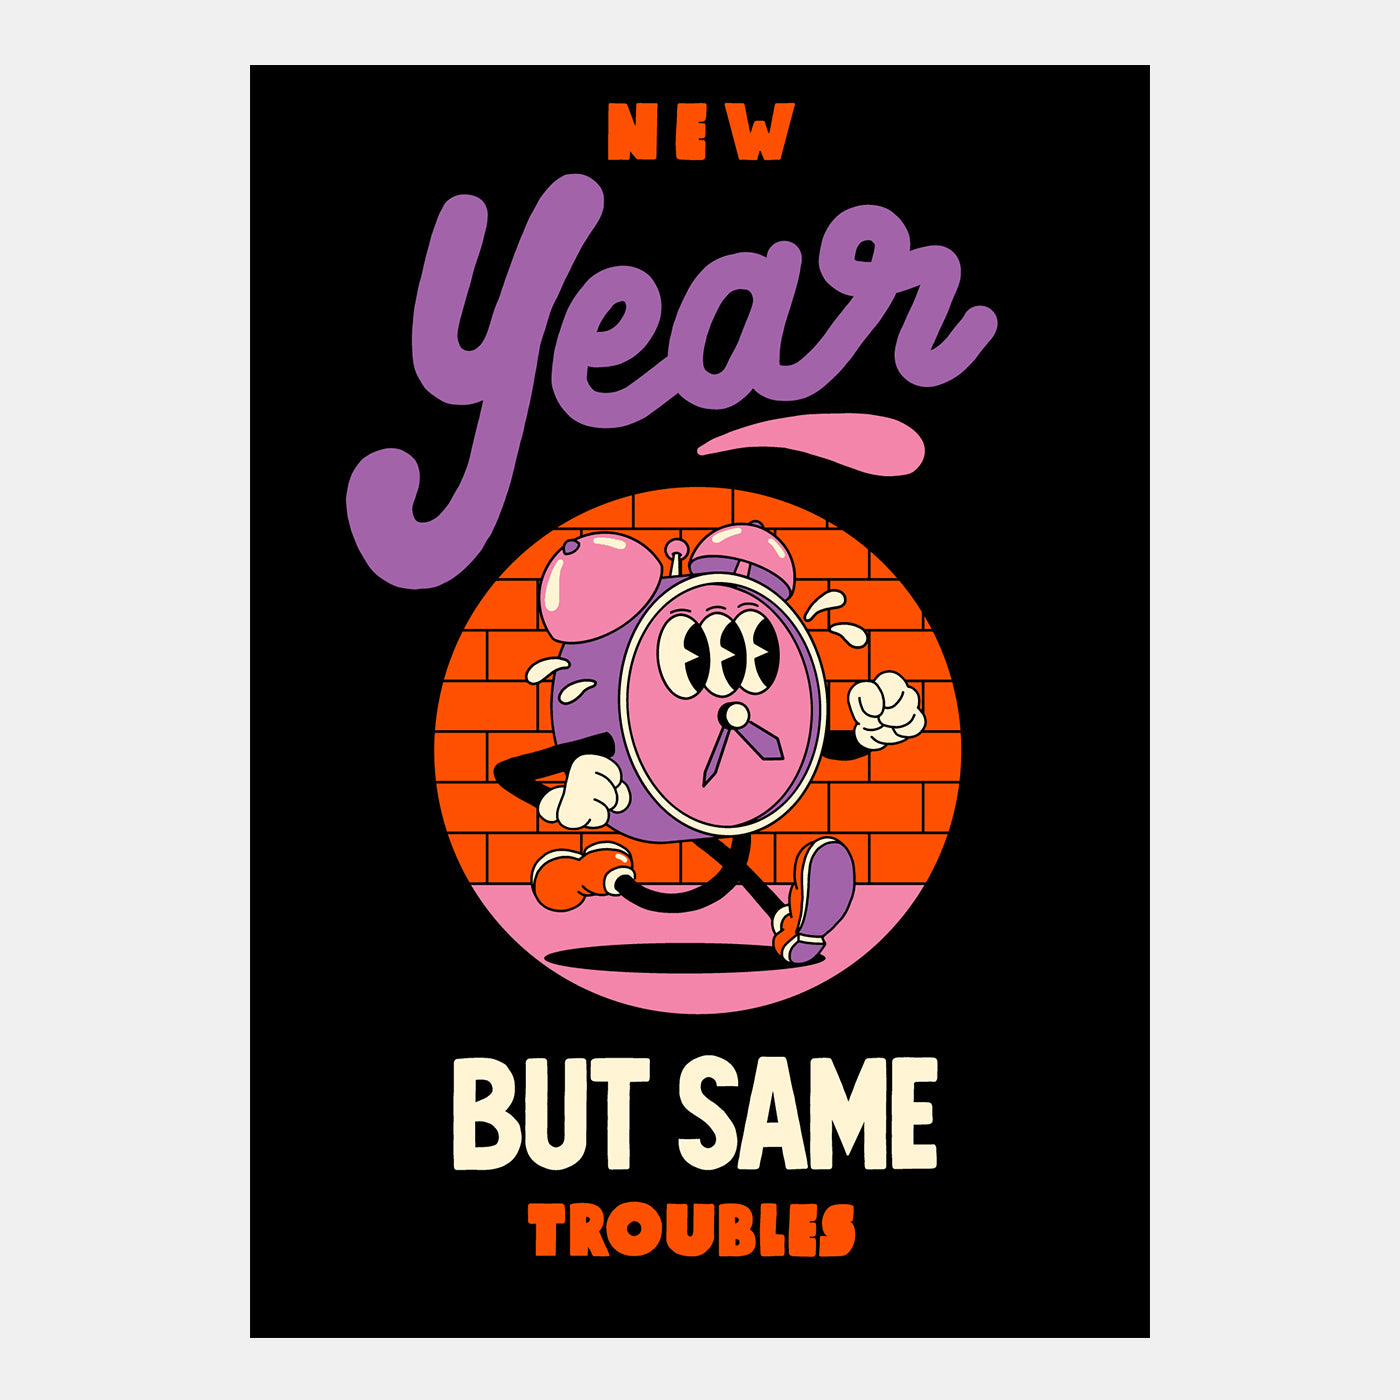 Yeye Weller: Same Troubles - Hen's Teeth Store